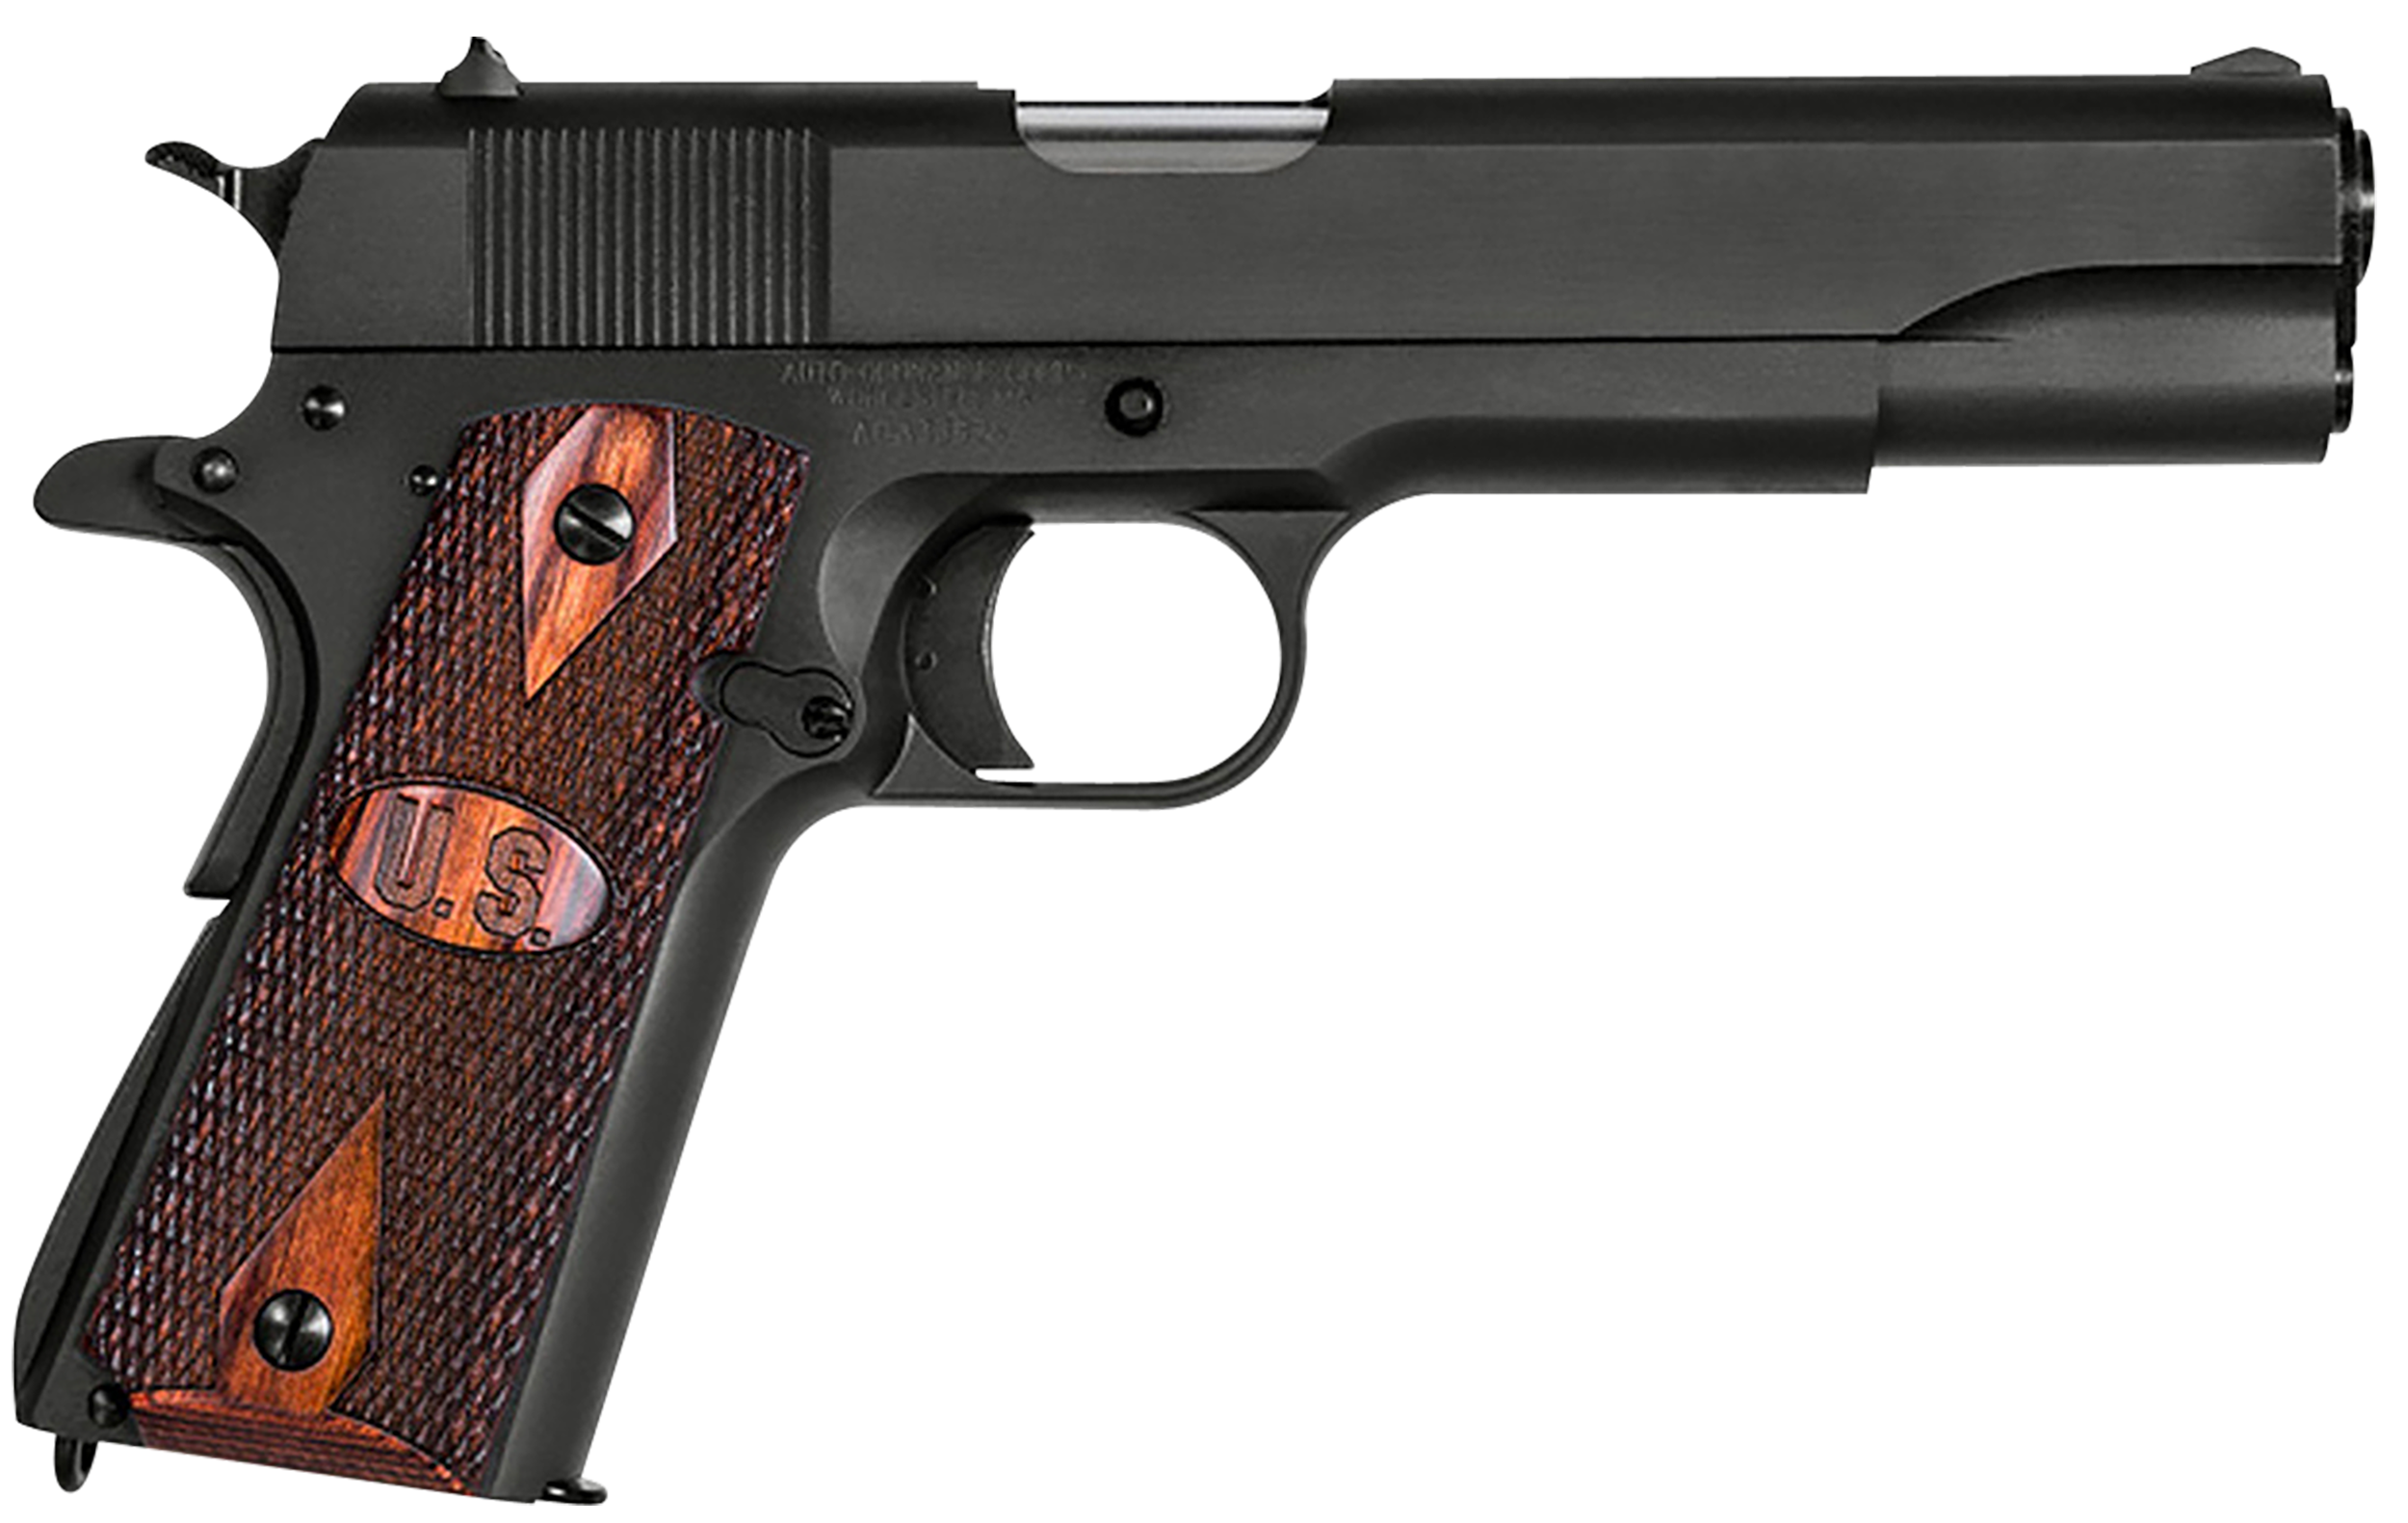 AUTO 1911BKOW  1911A1 GI 45 5IN WOOD